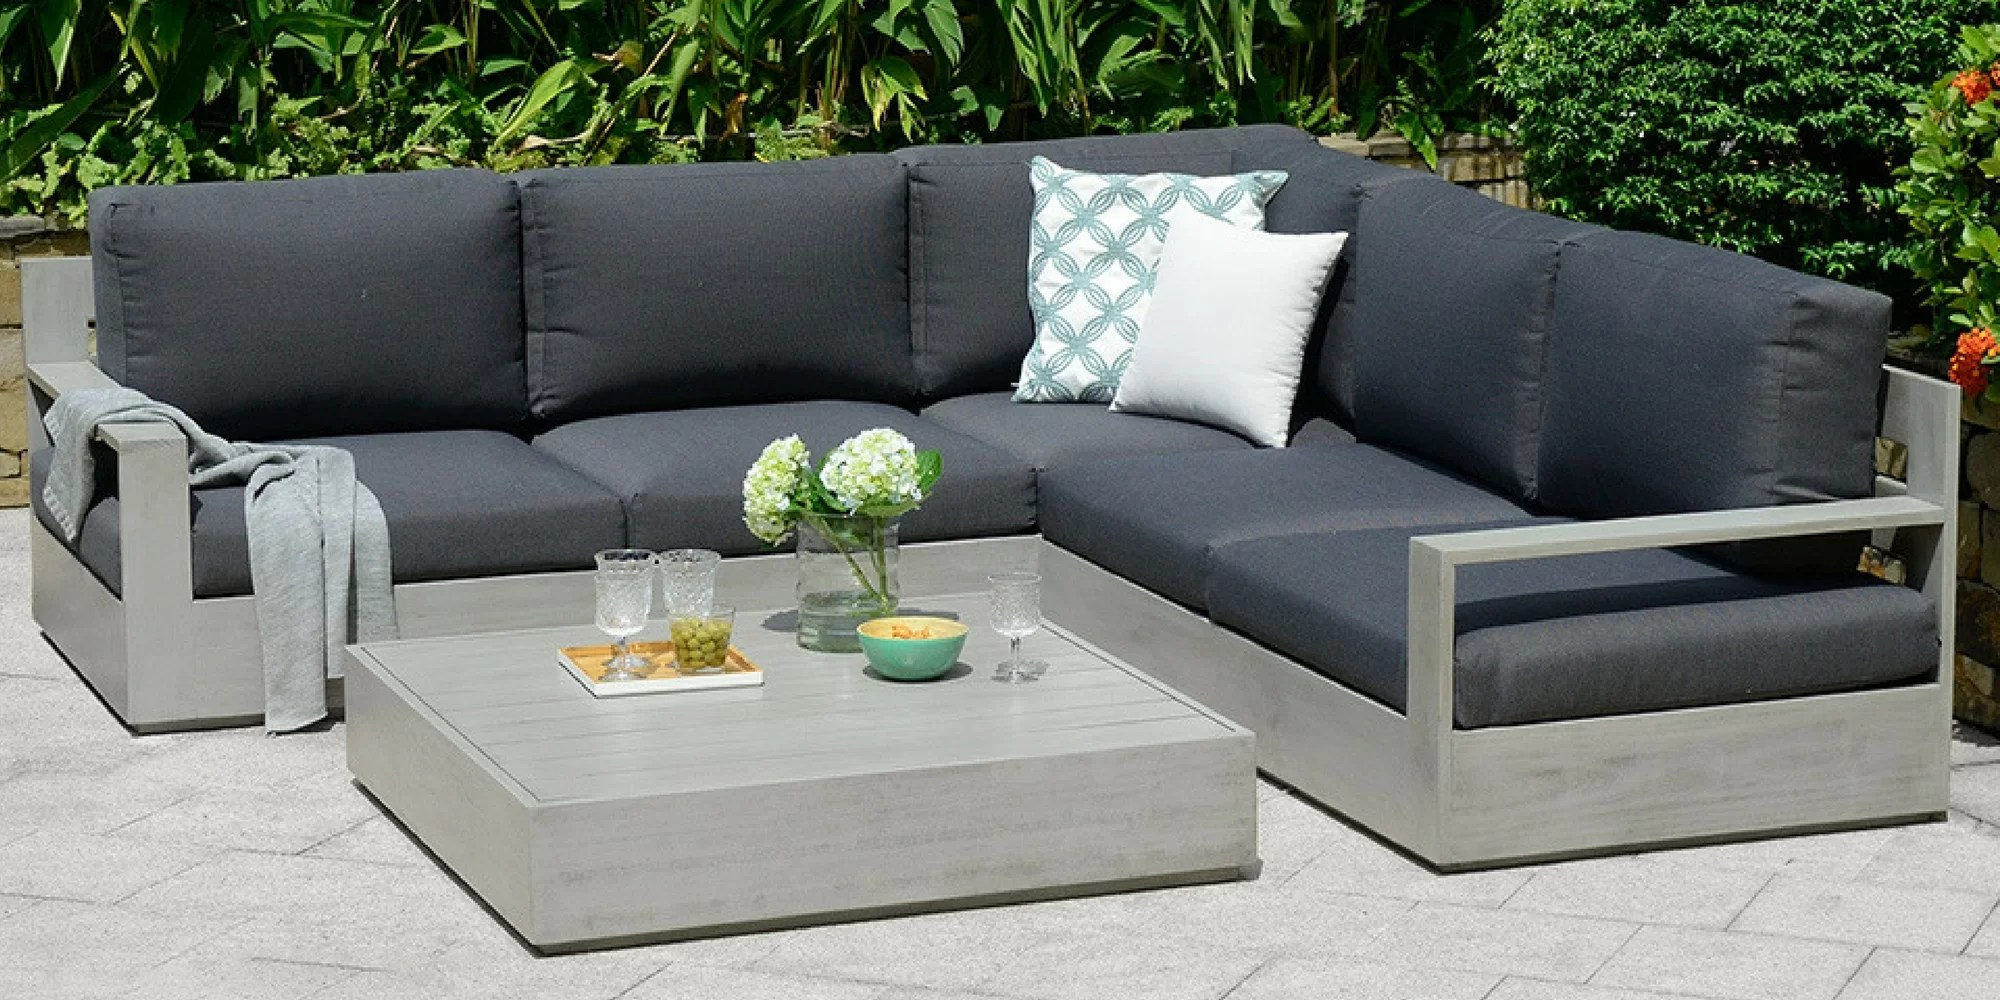 Owen 5 Piece Rattan Sofa Set With Cushions Deleon 5 Seater Corner Sofa Set